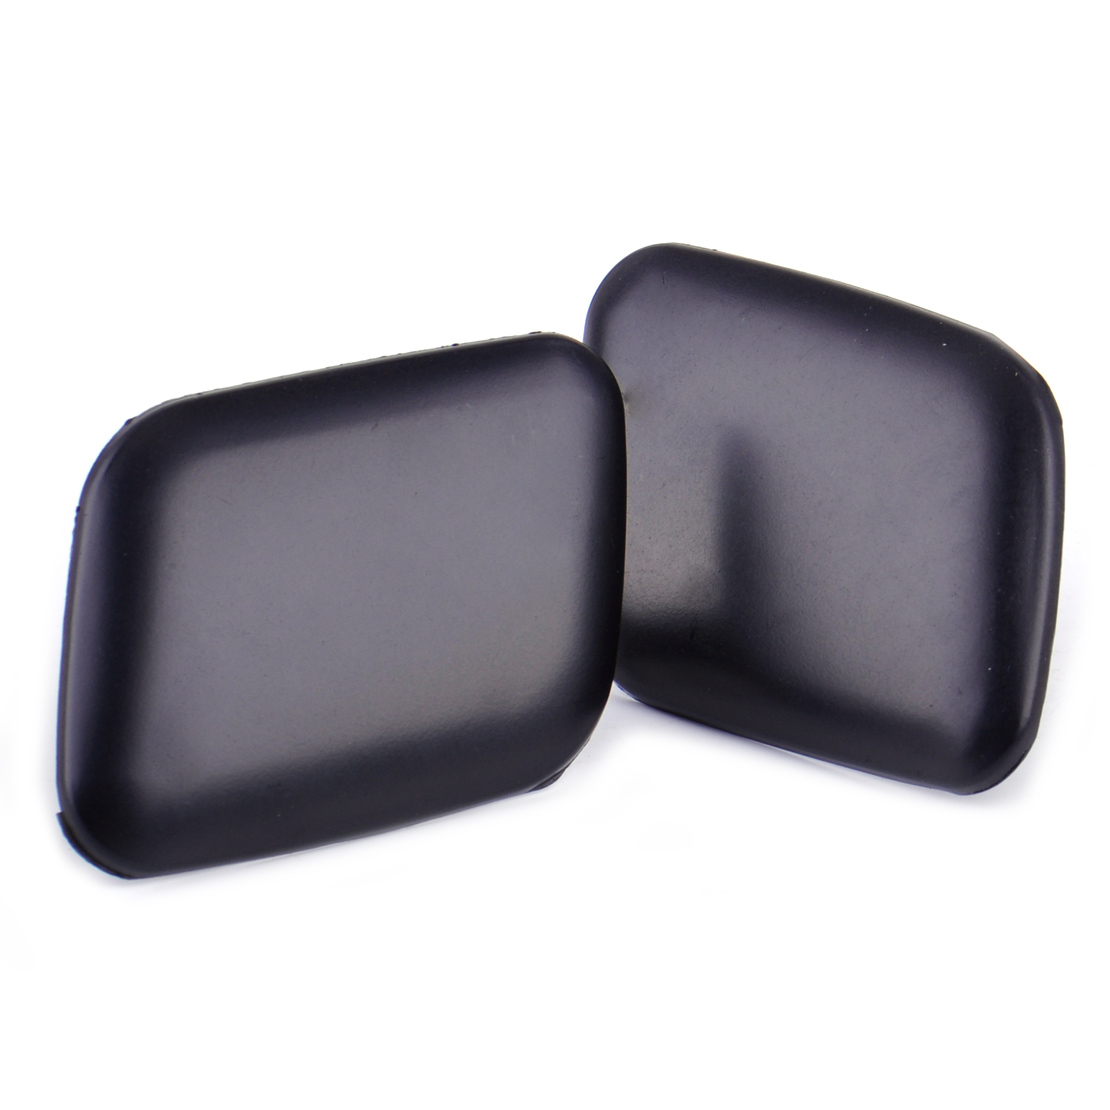 DWCX 2x Car Matte Black Front Bumper Headlight Washer Cover Cap 4B0955275 / 4B0955276 for <font><b>Audi</b></font> <font><b>A6</b></font> C5 1998 1999 2000 2001 <font><b>2002</b></font> image